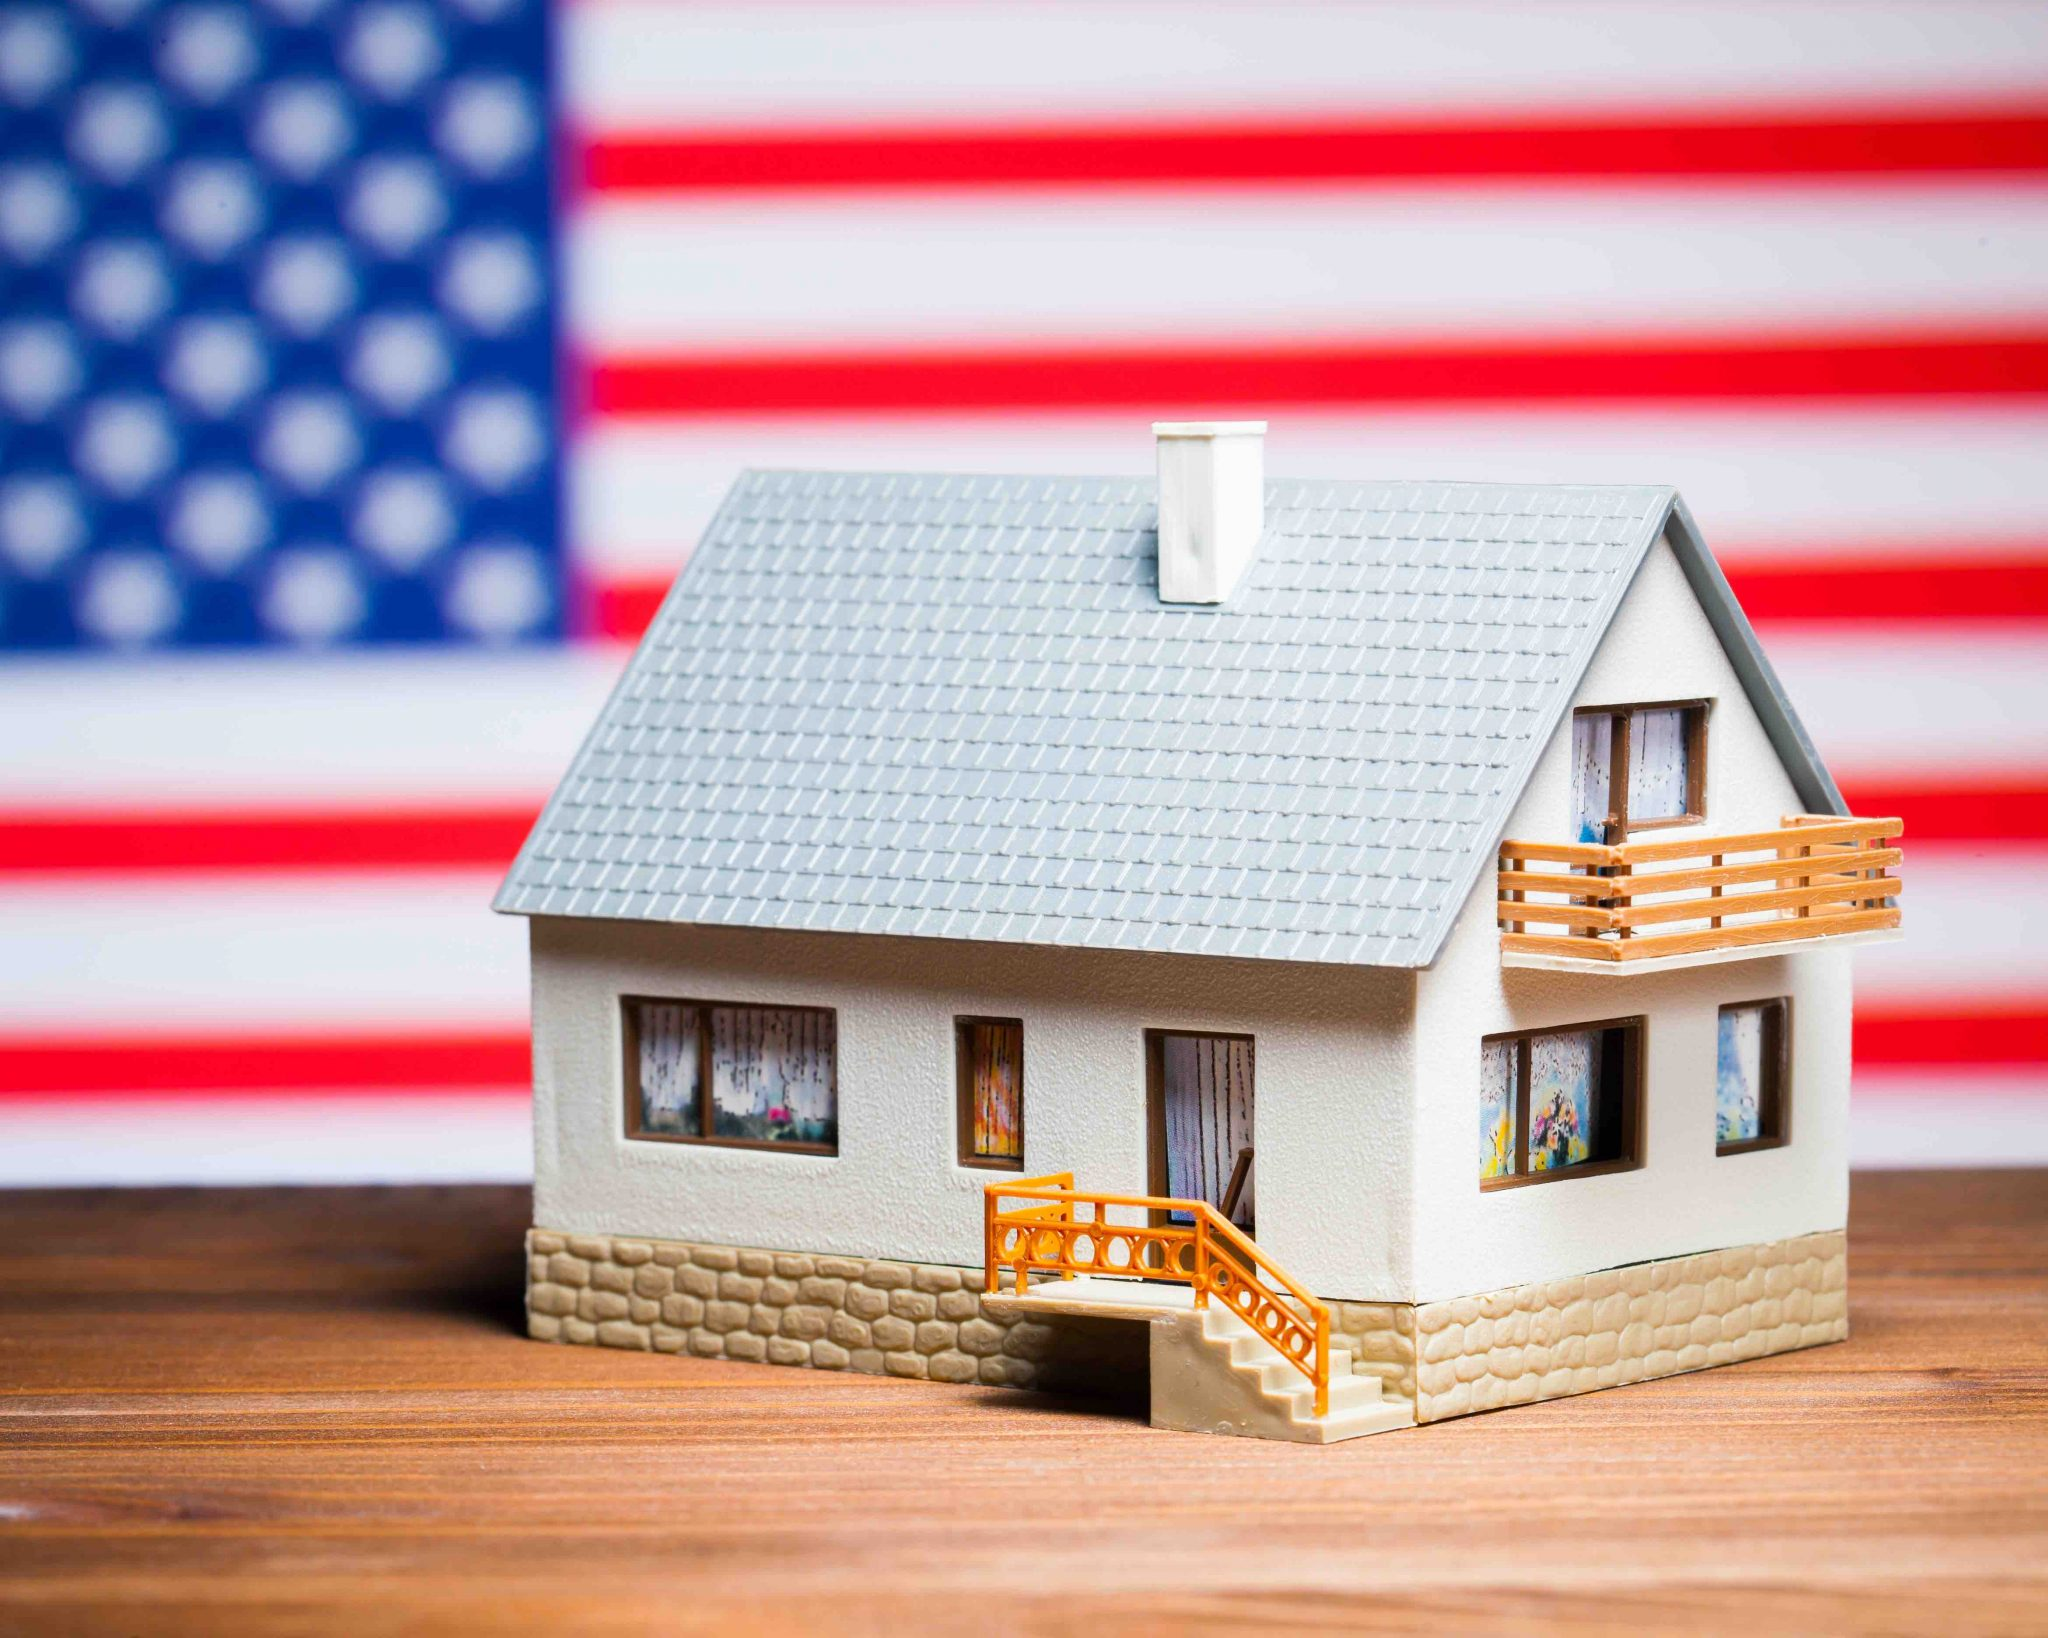 How will Trump's presidency effect global real estate investment?